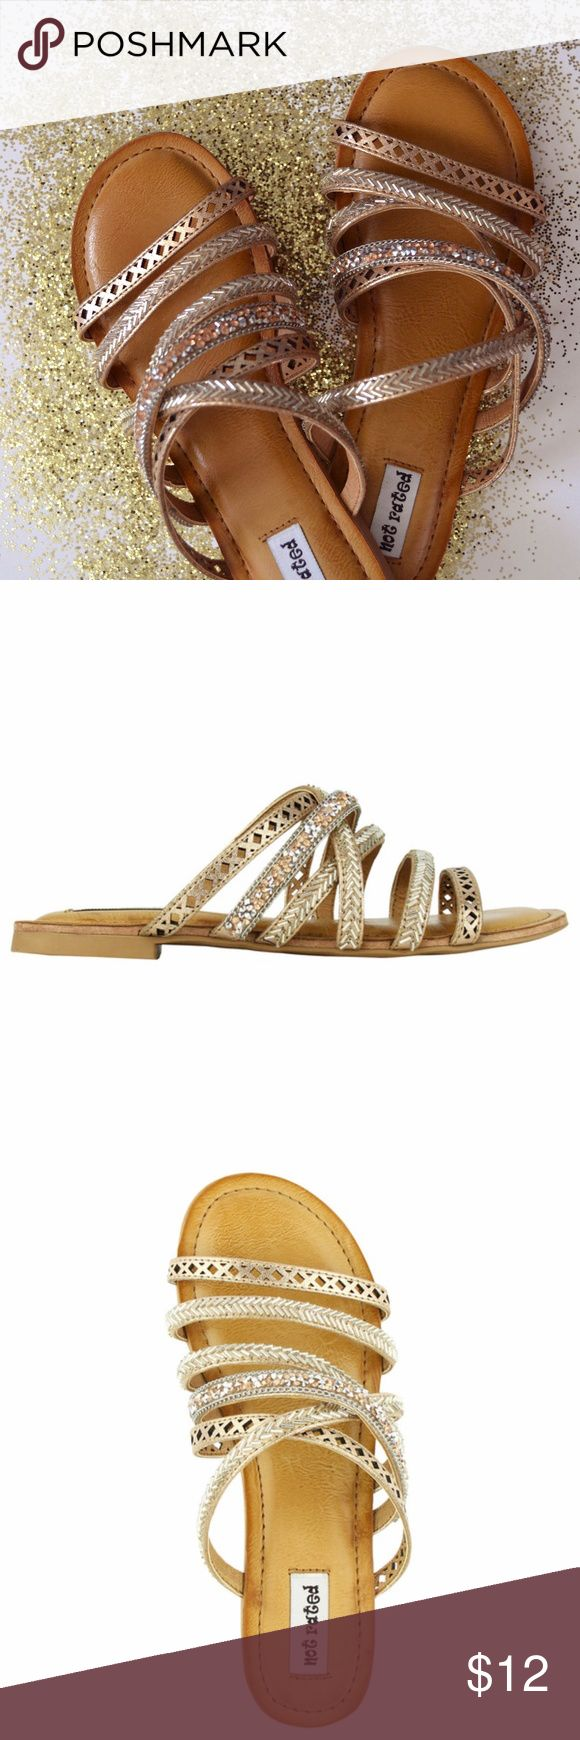 Rose Gold Not Rated Slides Like New!  Rose Gold / Champagne/ Gold accents  Easy Slide fit  Very Comfortable! Not Rated Shoes Sandals